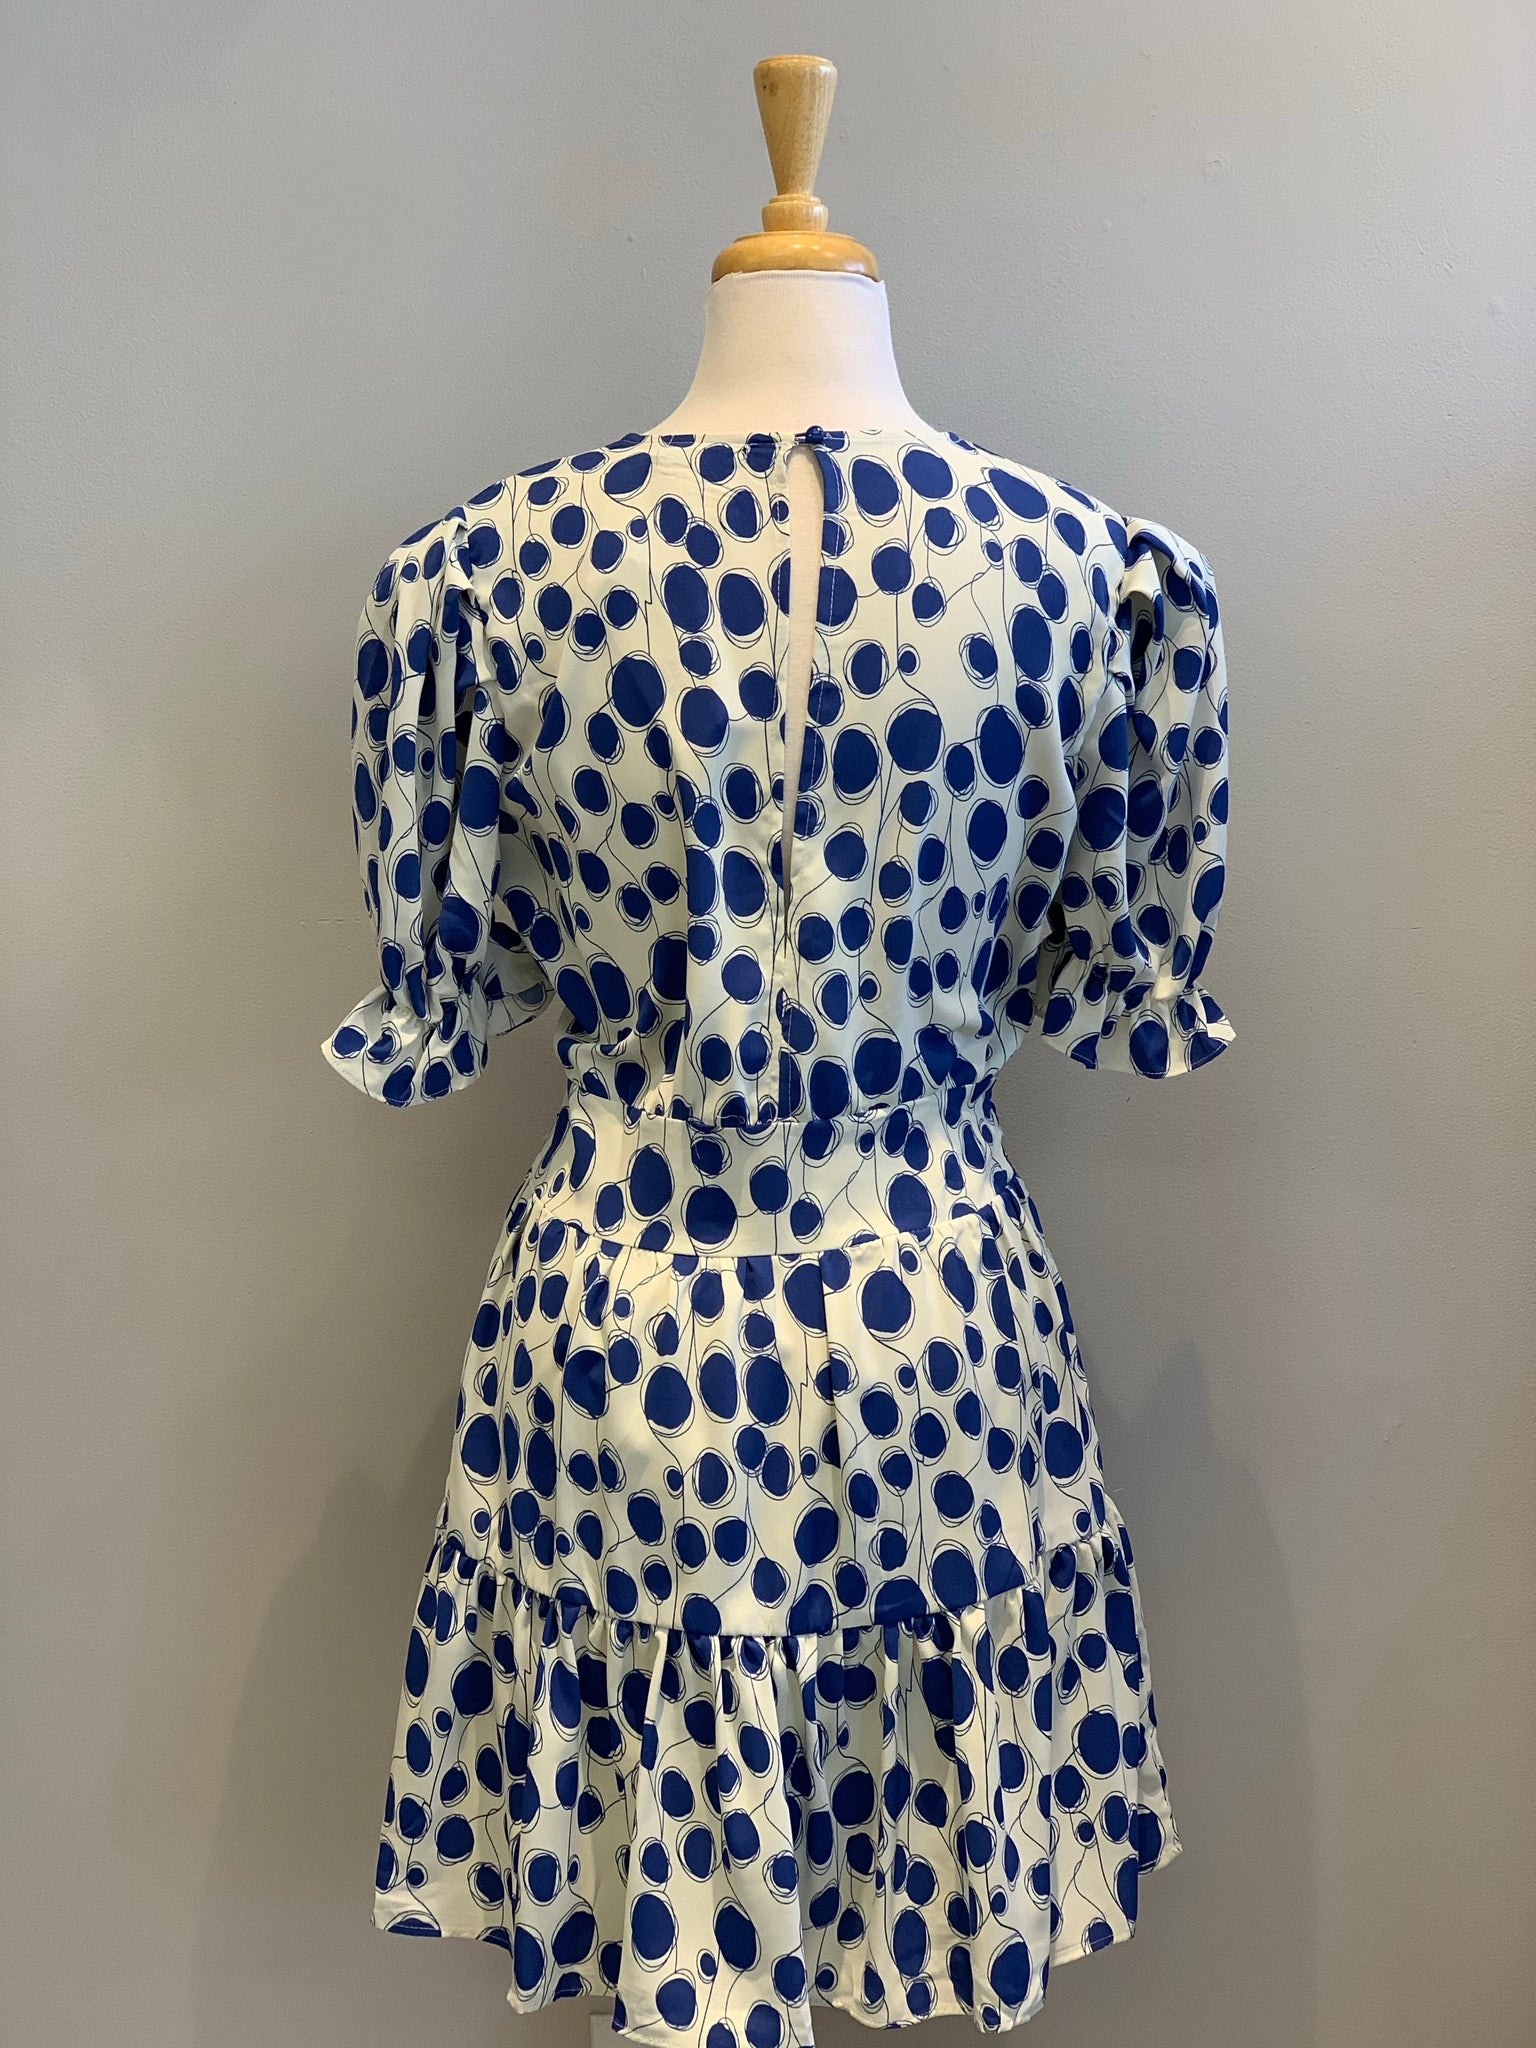 INA Dotted Dress - Showroom56